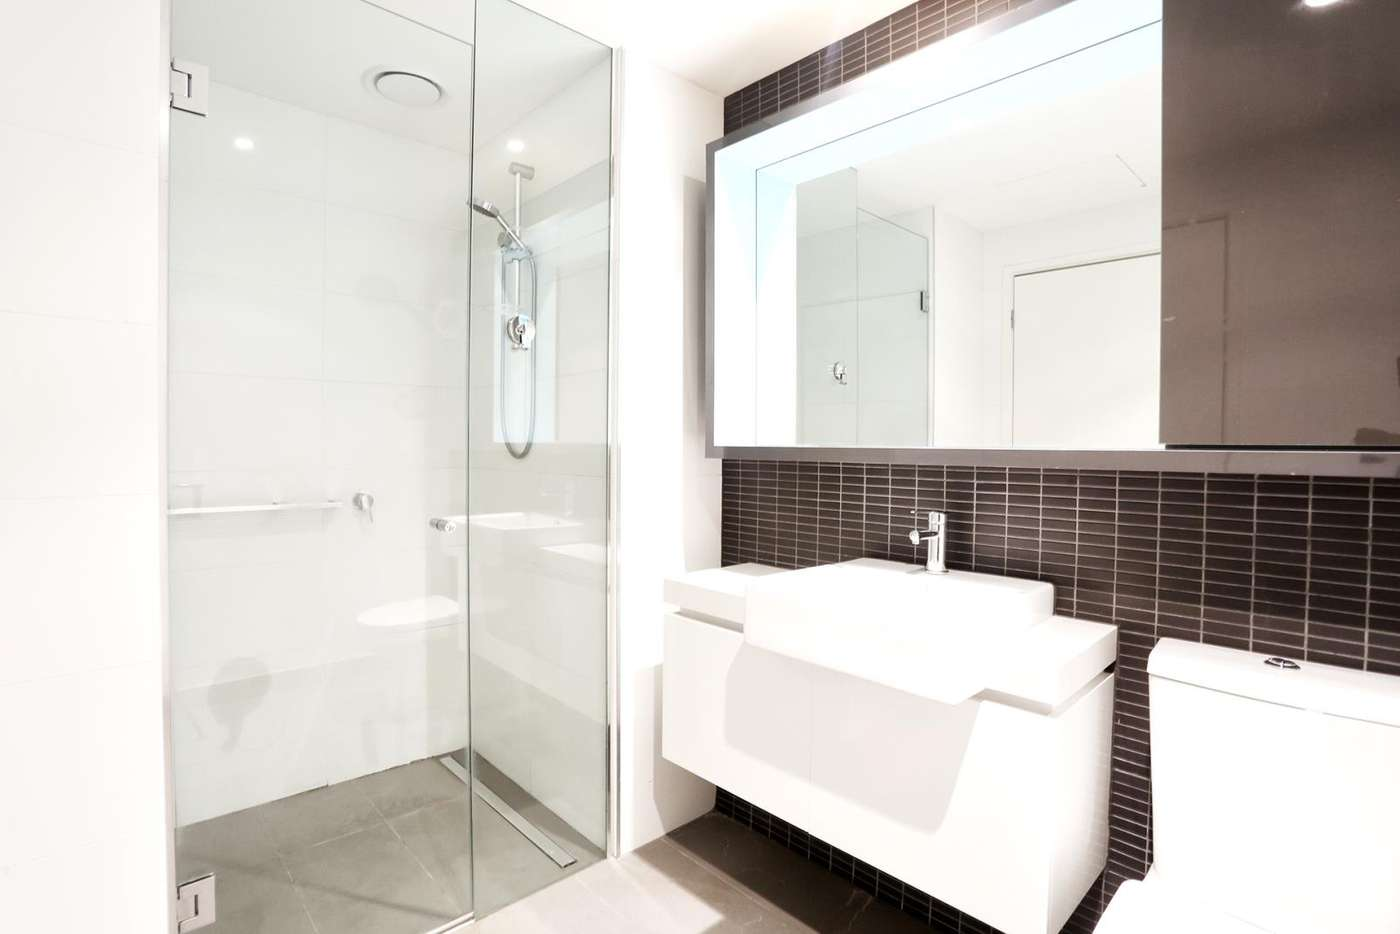 Sixth view of Homely apartment listing, 204/92 Cade Way, Parkville VIC 3052